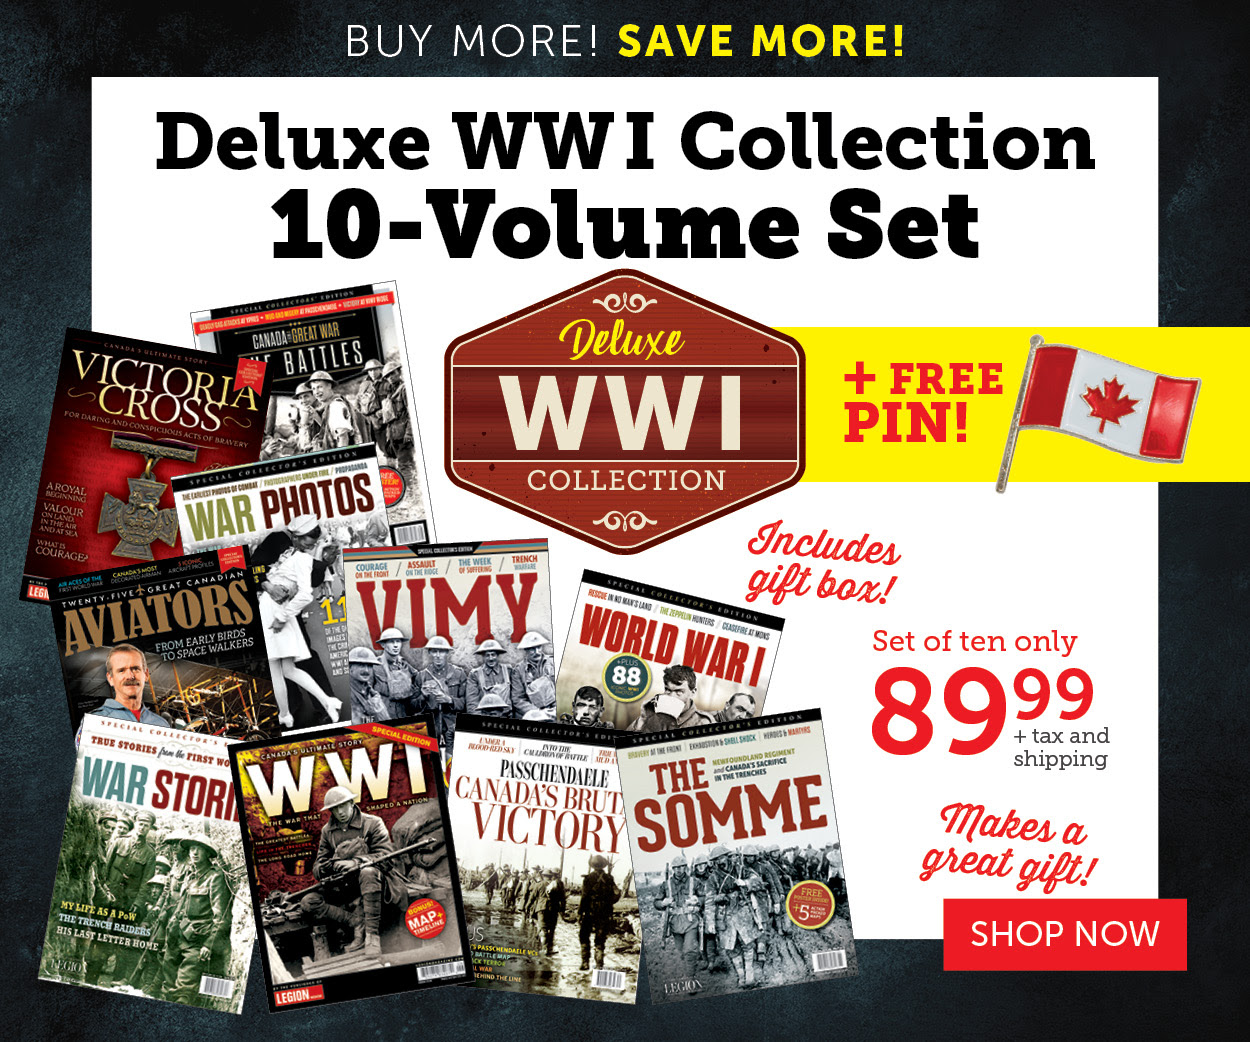 Deluxe WWI Collection 10-volume set